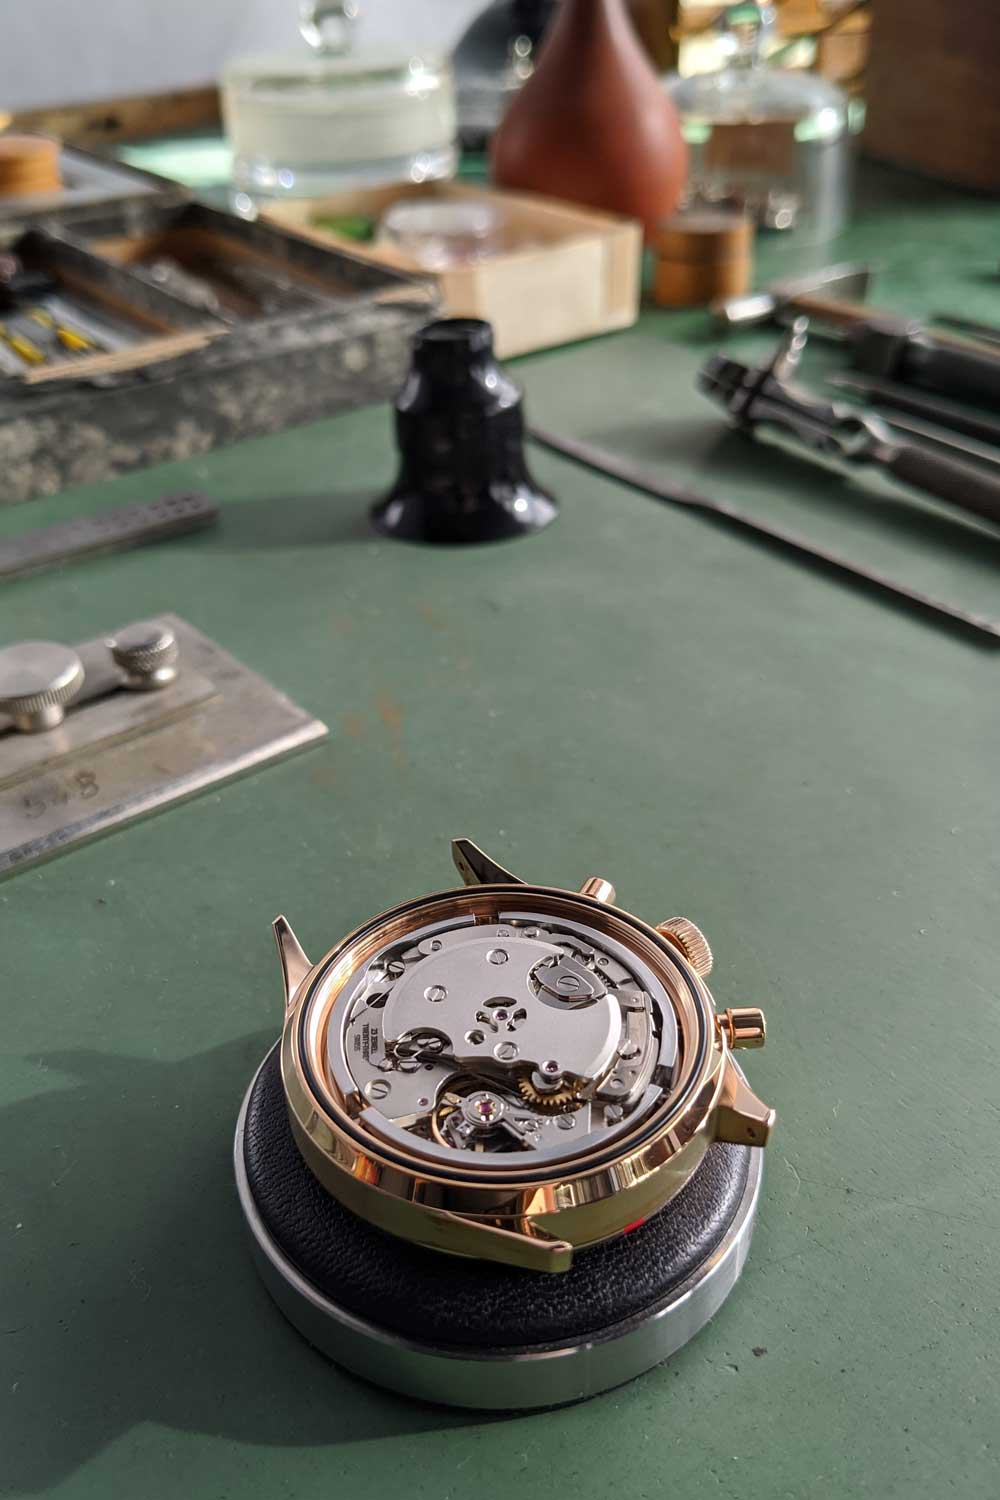 Seen here without the solid caseback installed is the manual-wound Sellita SW 510, an industrial powerhouse movement, which powers the Hanhart x The Rake & Revolution Limited Edition Bronze 417 Chronograph (Image: Hanhart.com)